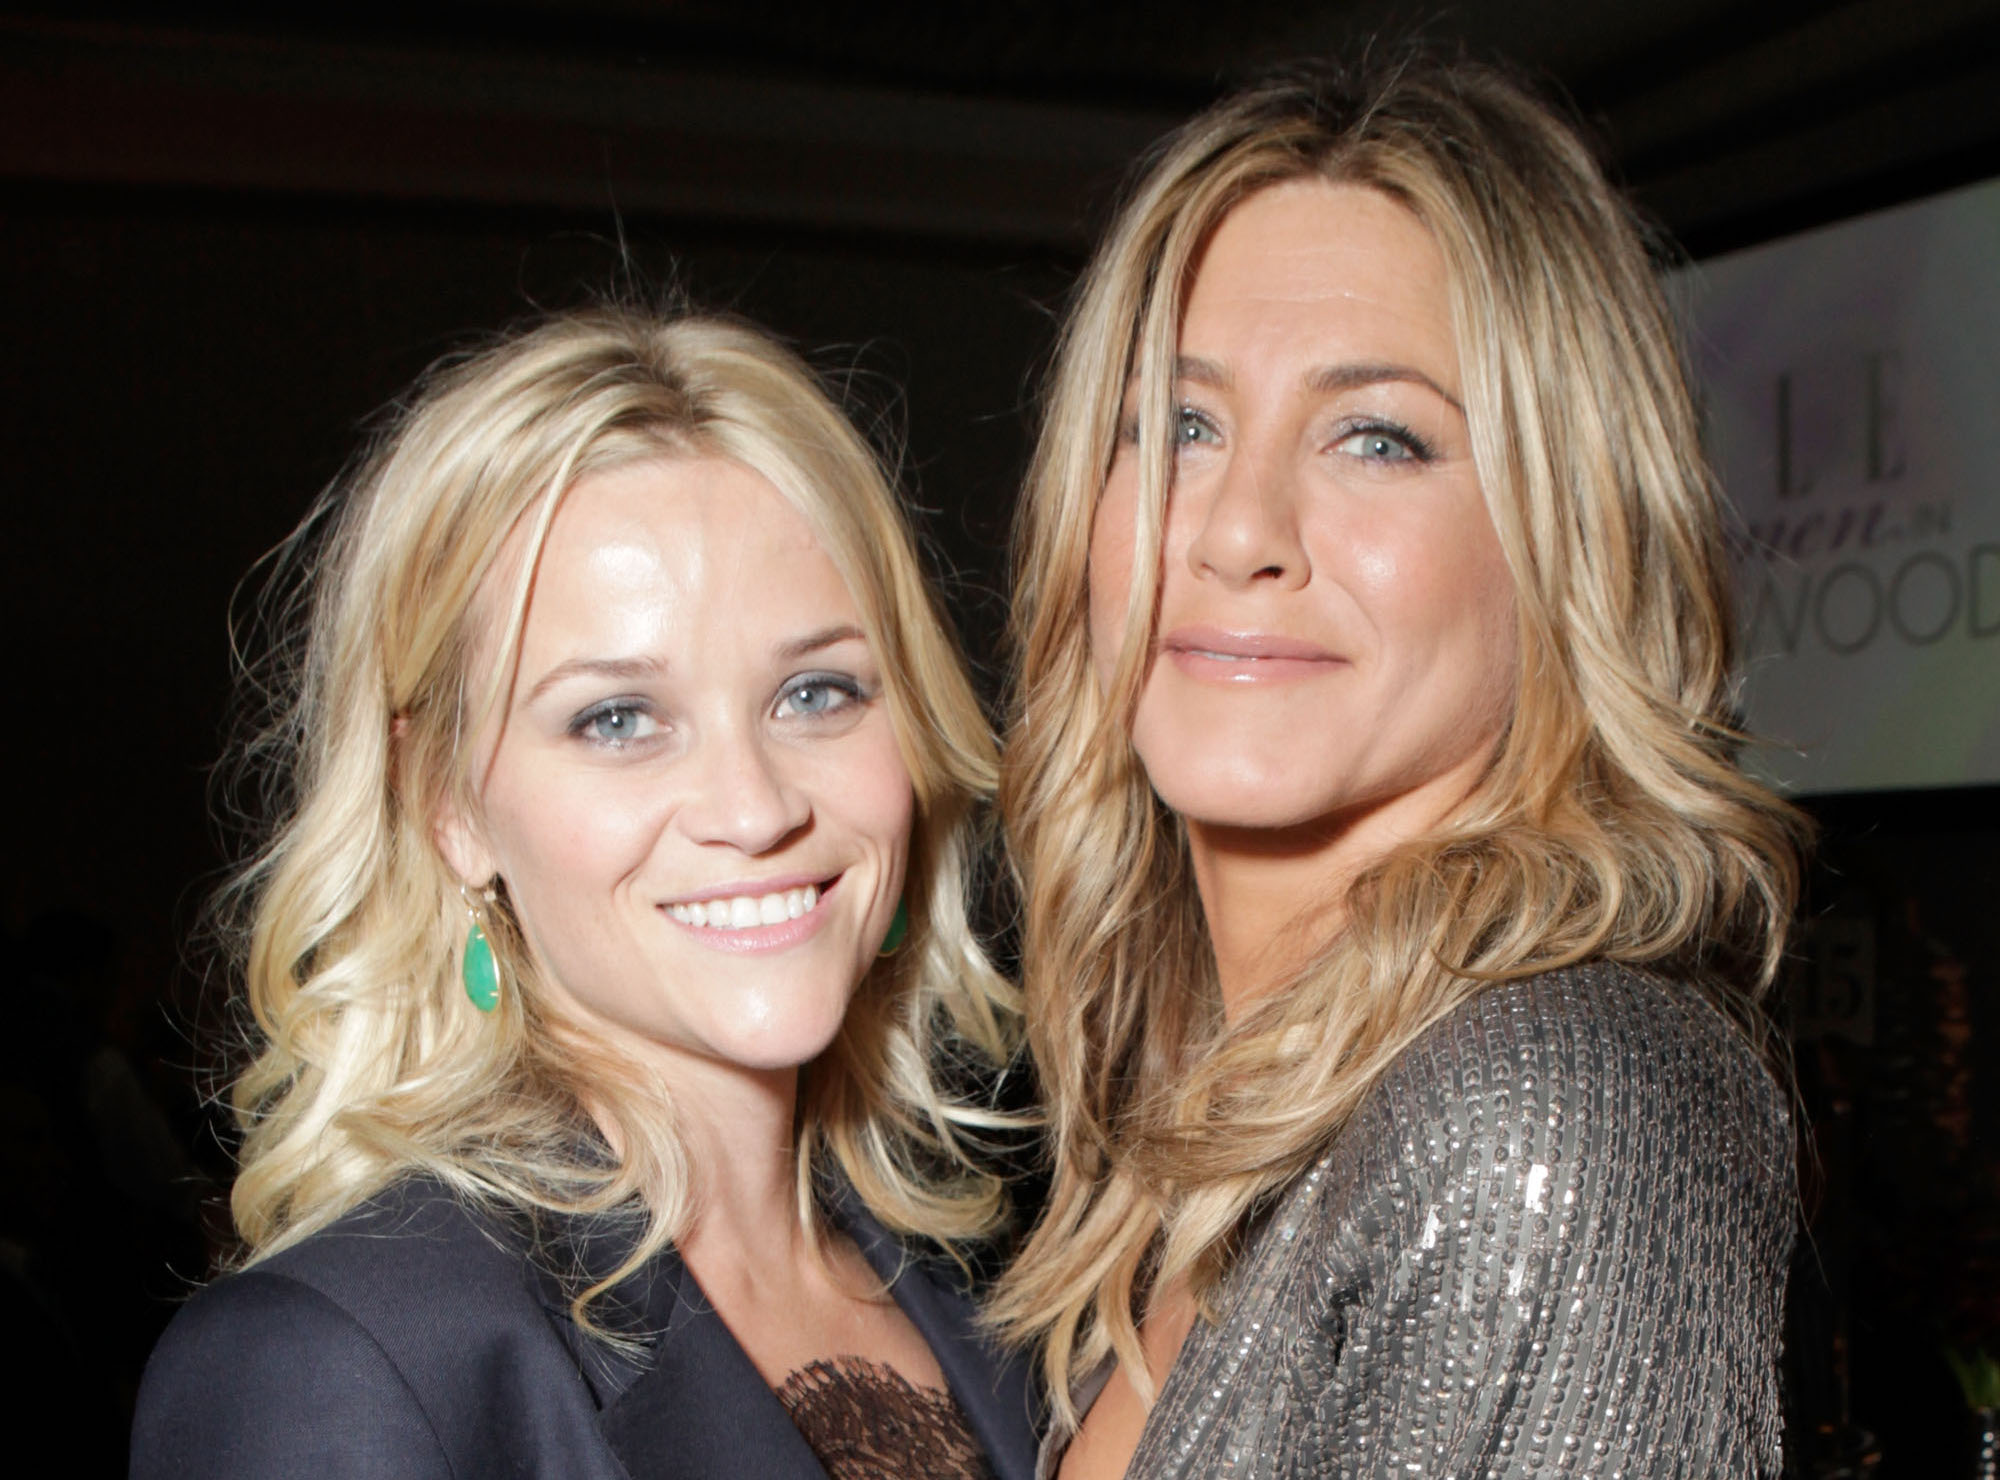 Apple orders two seasons of Jennifer Aniston, Reese Witherspoon TV drama